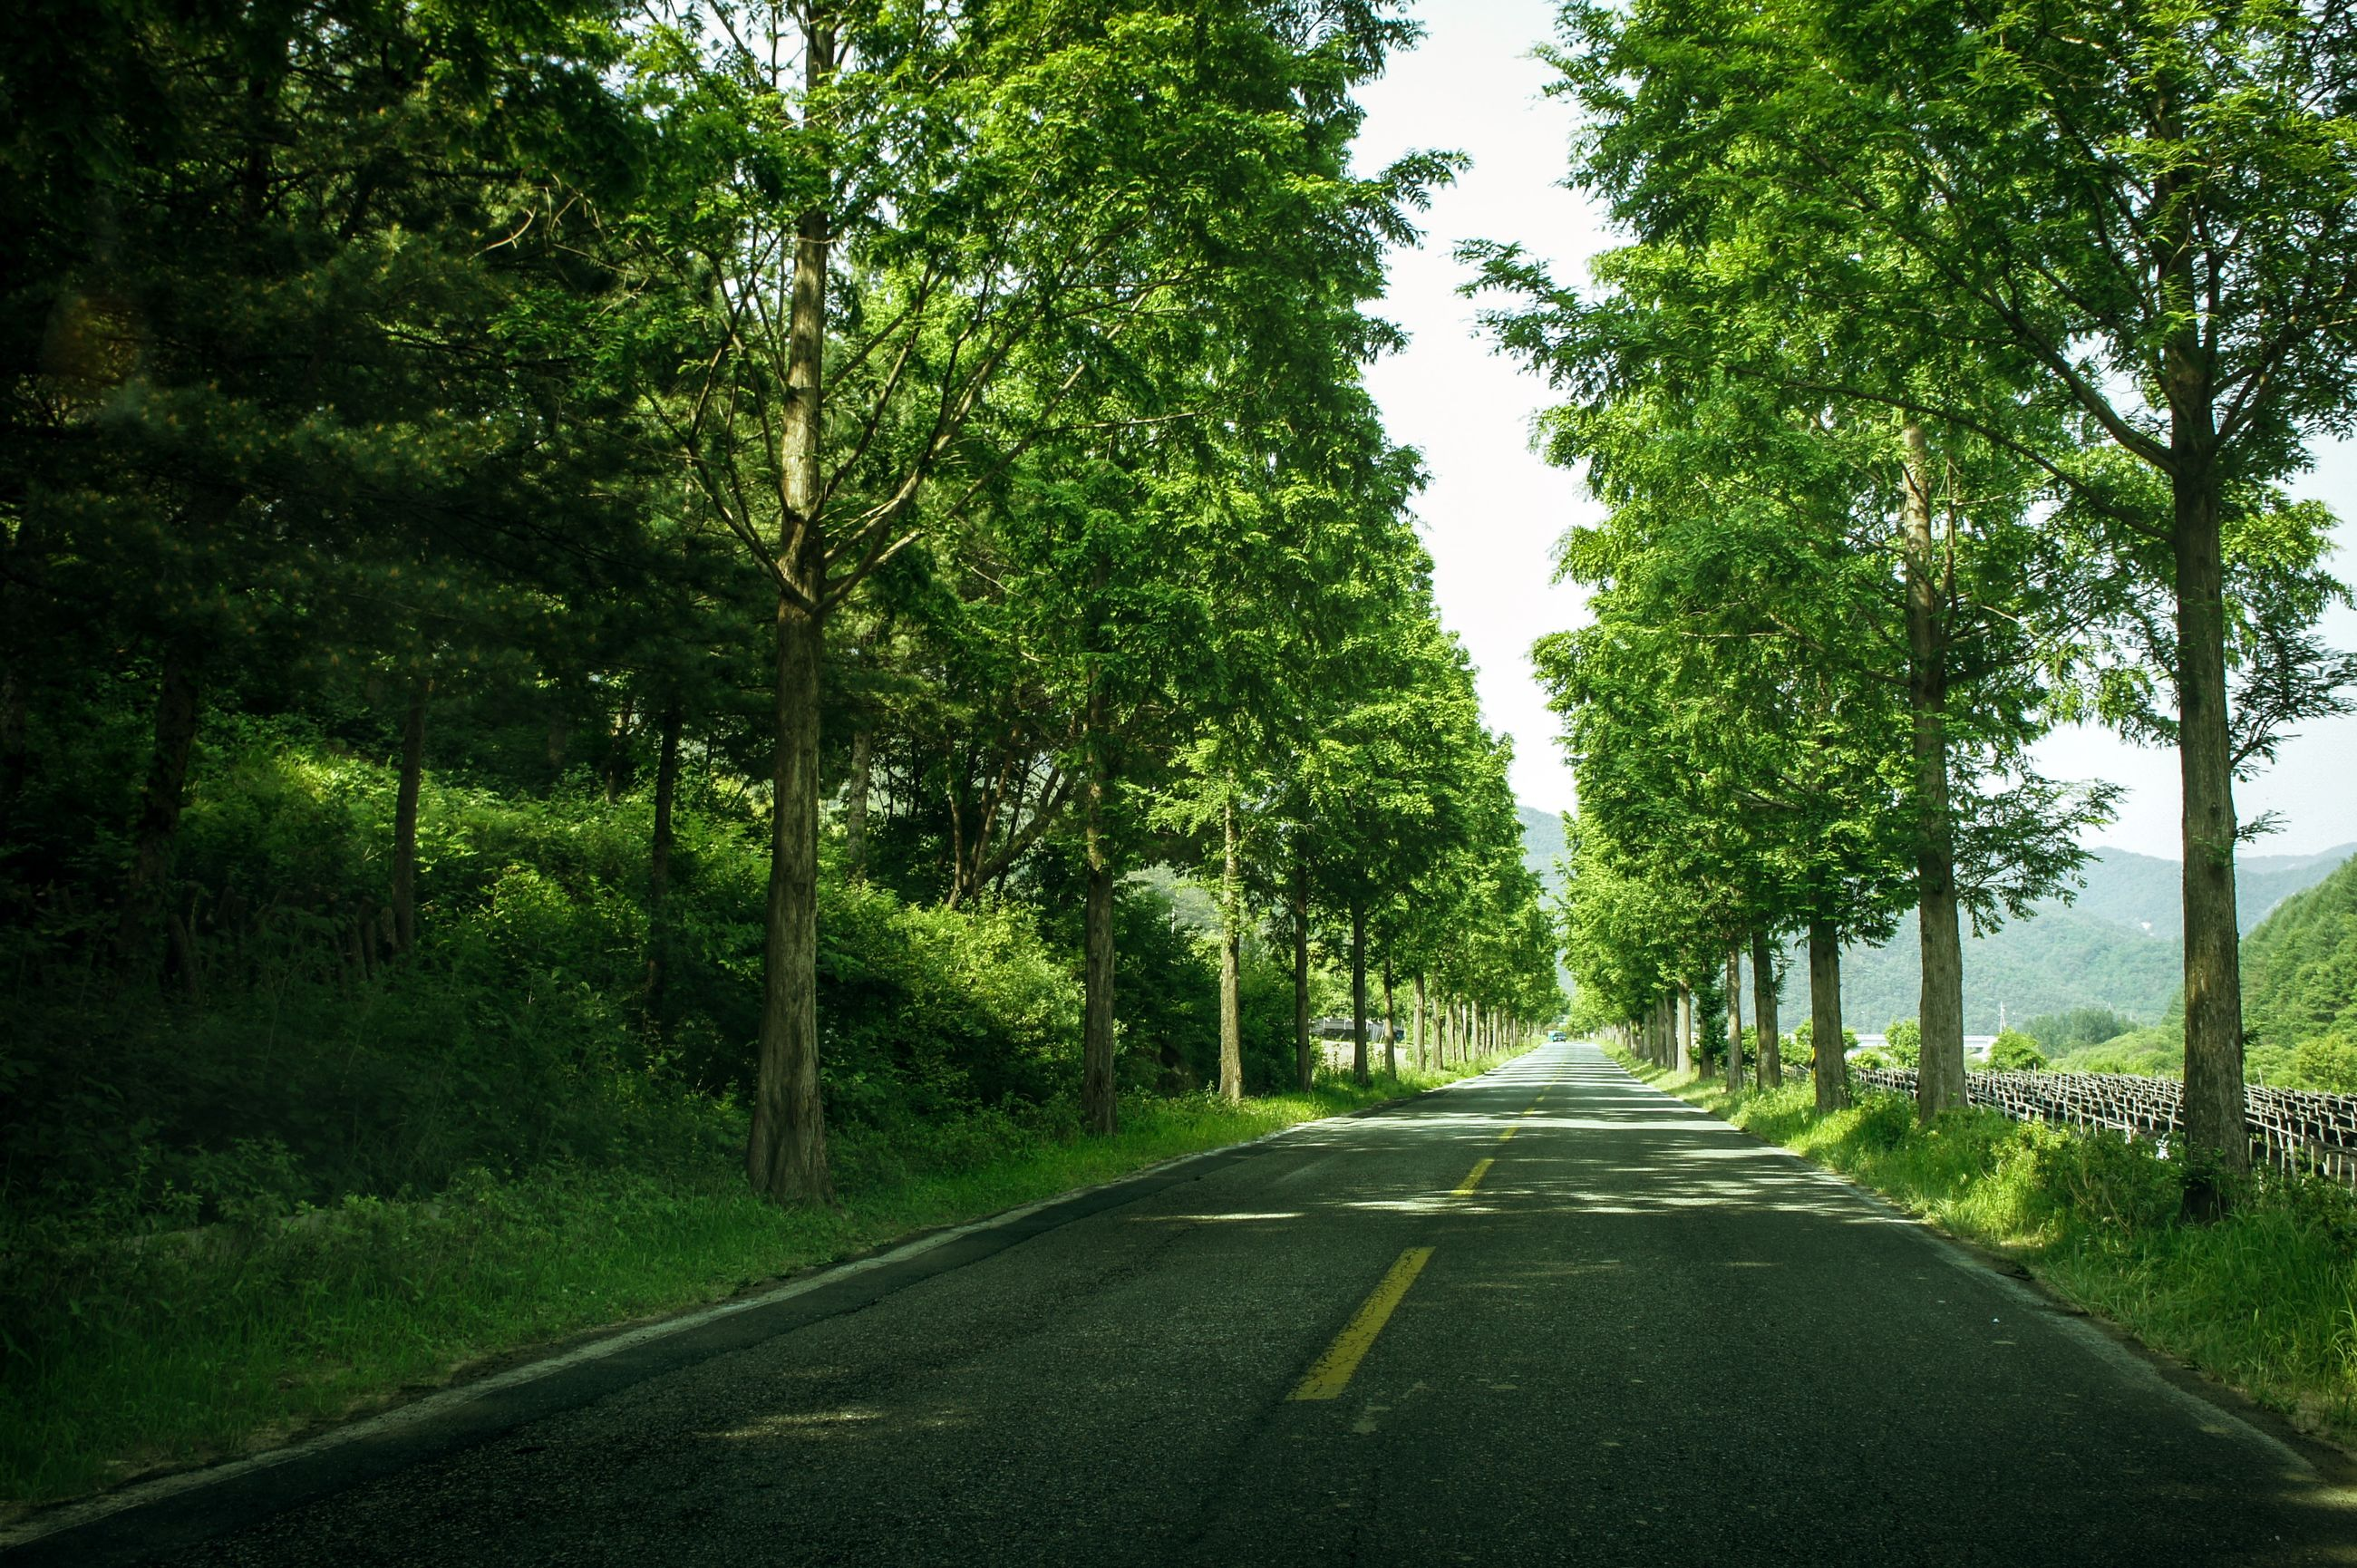 tree, plant, road, transportation, the way forward, direction, nature, no people, diminishing perspective, green color, day, tranquility, growth, land, road marking, marking, sign, beauty in nature, outdoors, symbol, treelined, dividing line